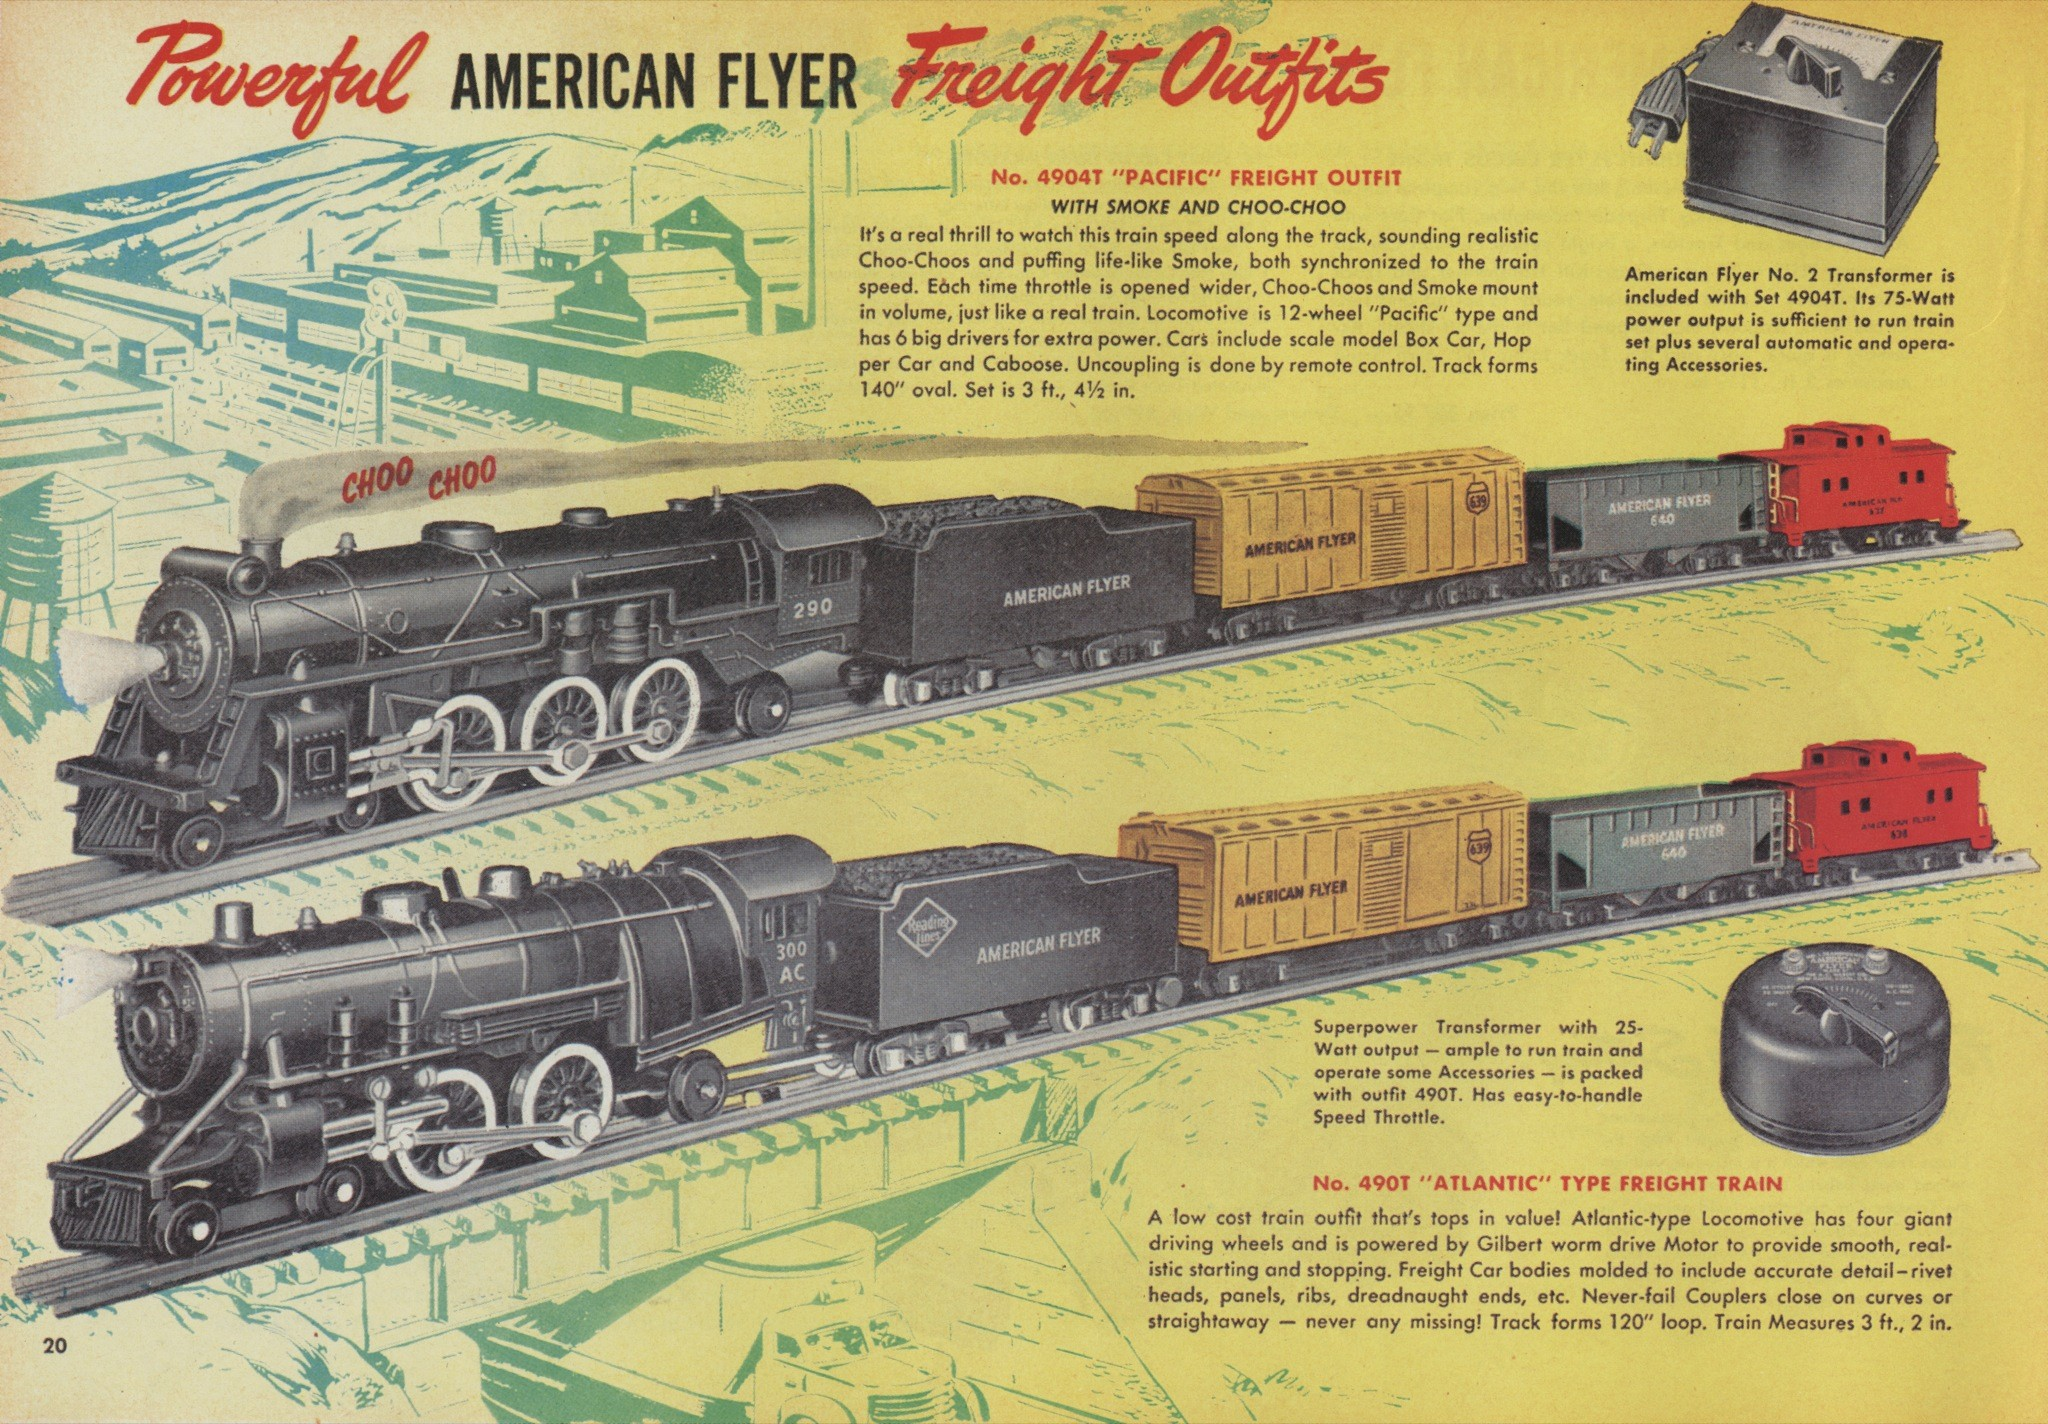 American Flyer Steam Engine Wiring Diagram American Flyer